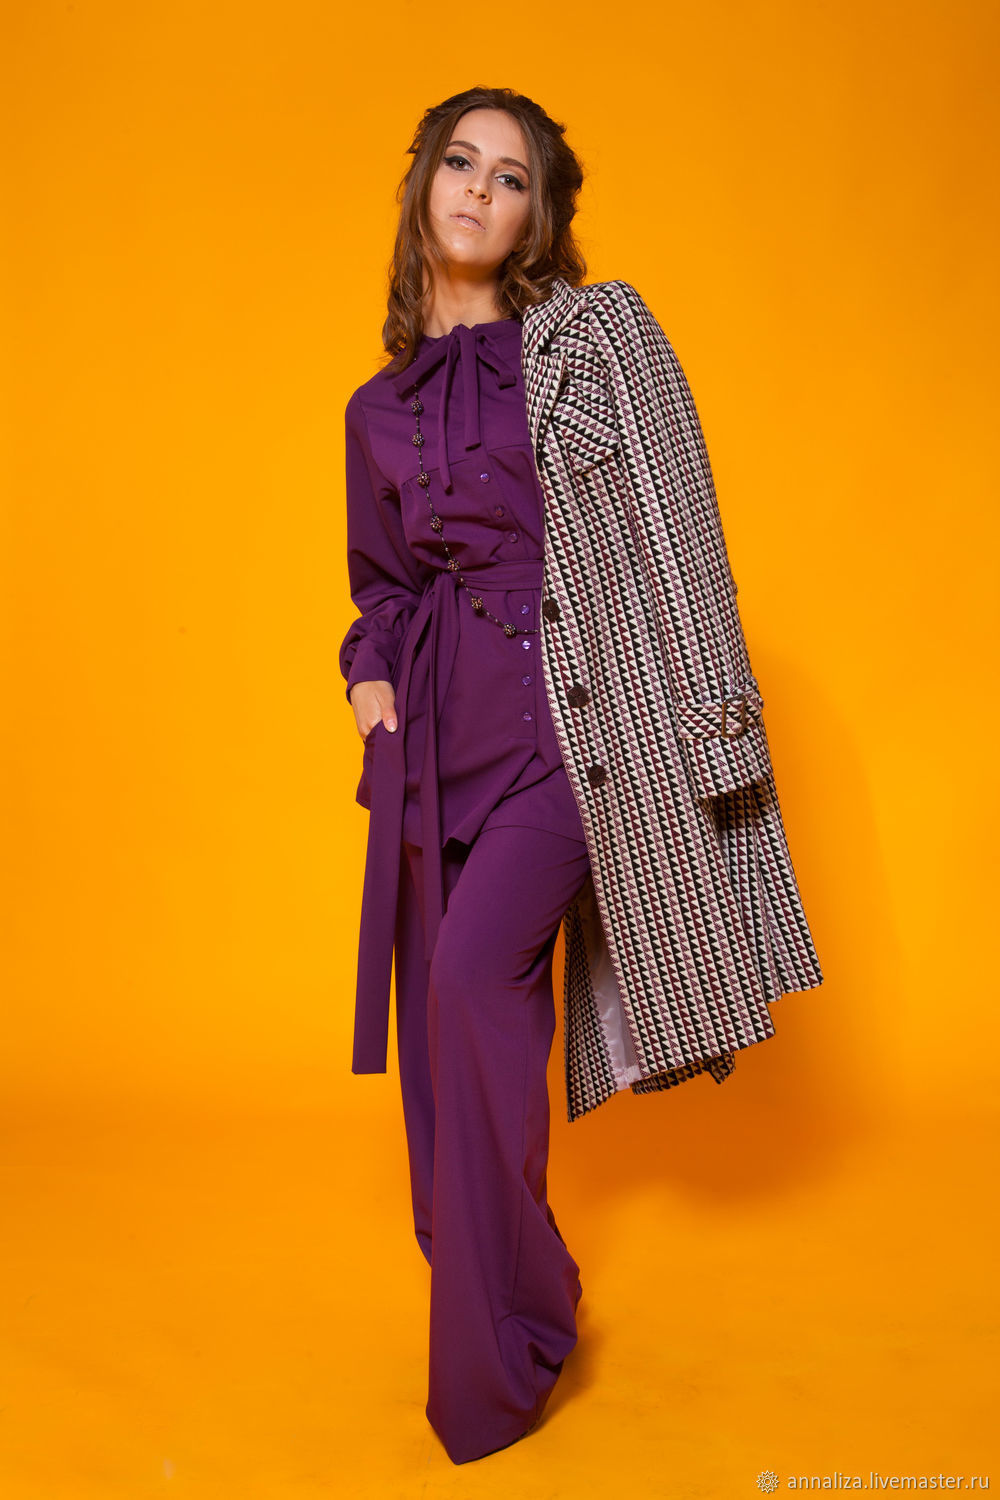 Women's suit with the style of the 70's 'Purple charm', Suits, Moscow,  Фото №1